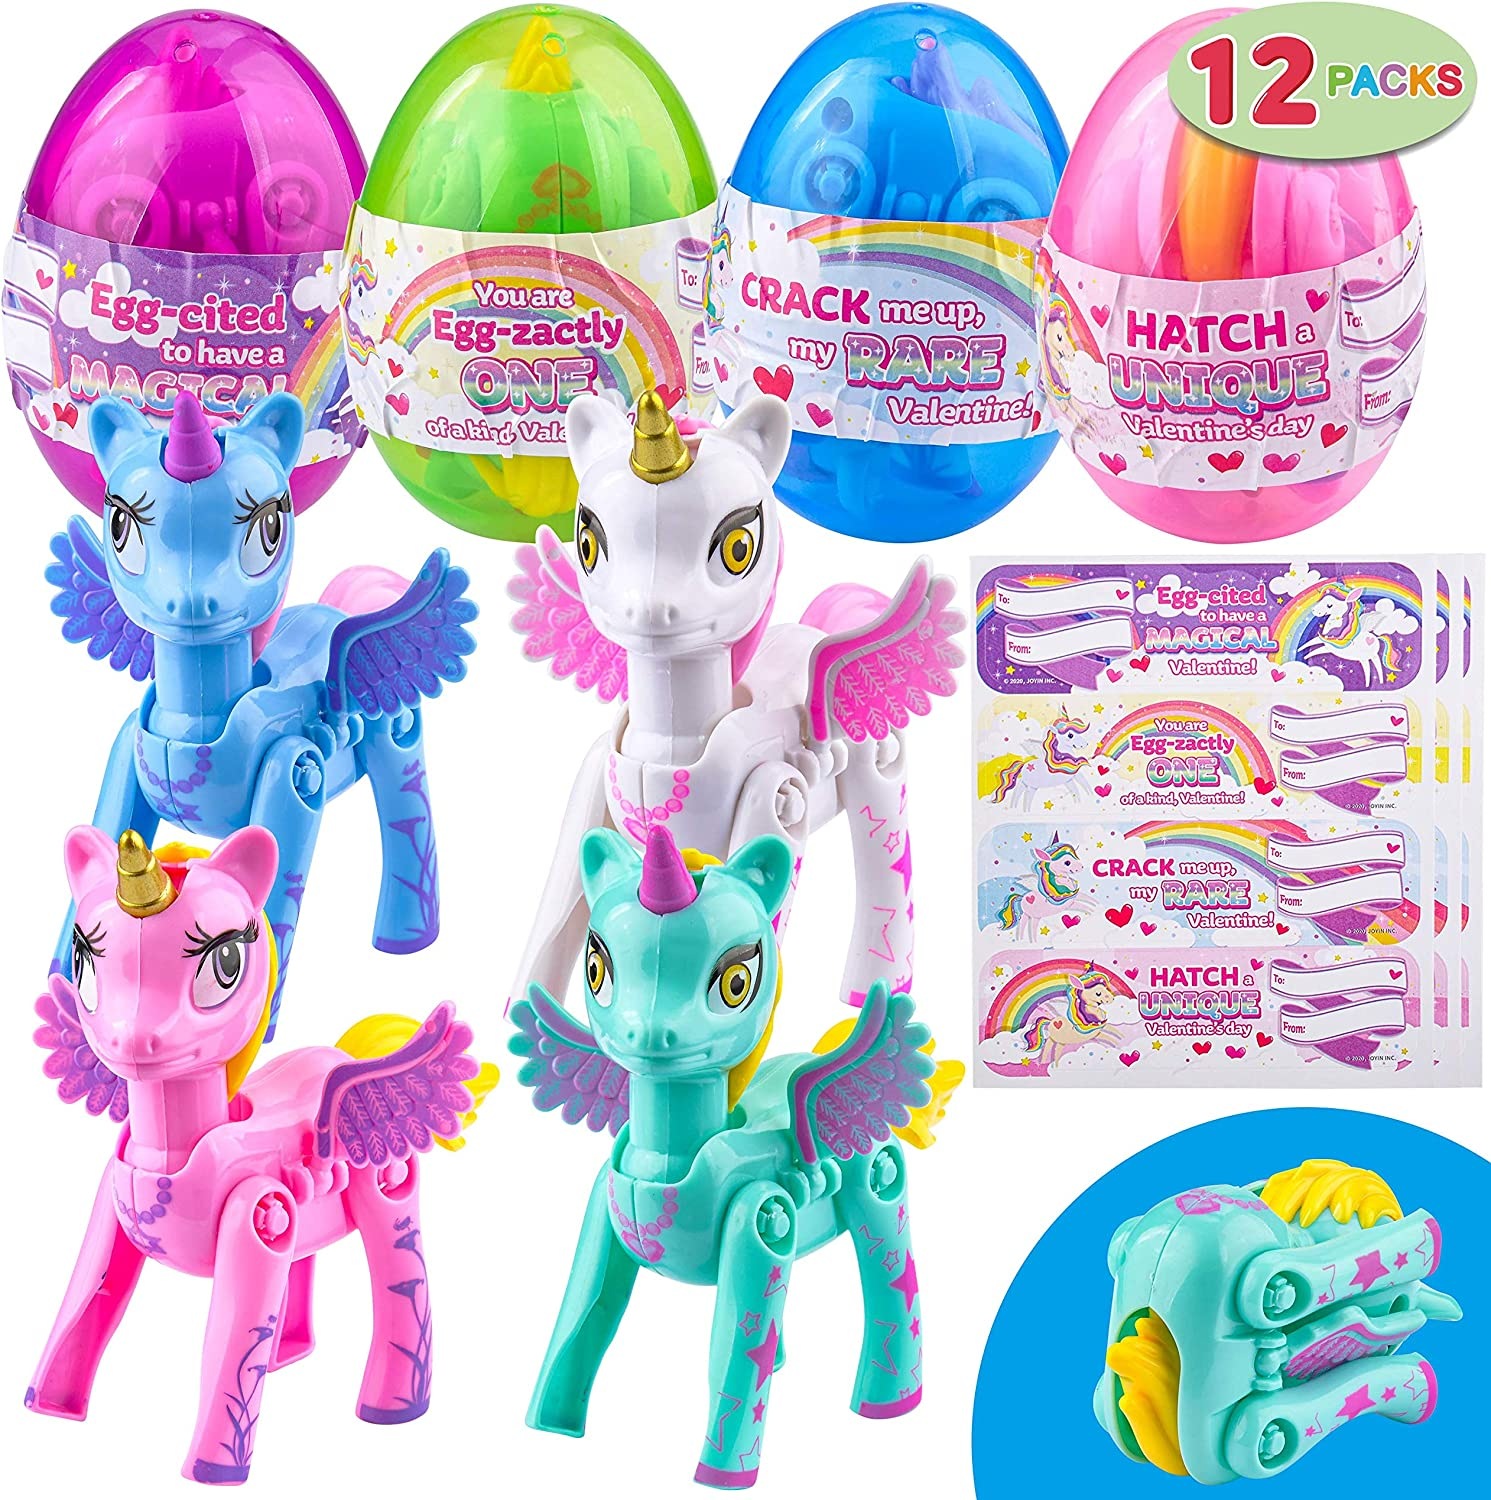 Valentine/'s Greeting Cards JOYIN 12 Pack Valentines Day Card with Transforming Unicorn Toys in Egg for Valentine Party Favor Classroom Exchange Prize Transforming Unicorns Hatching Unicorn Eggs